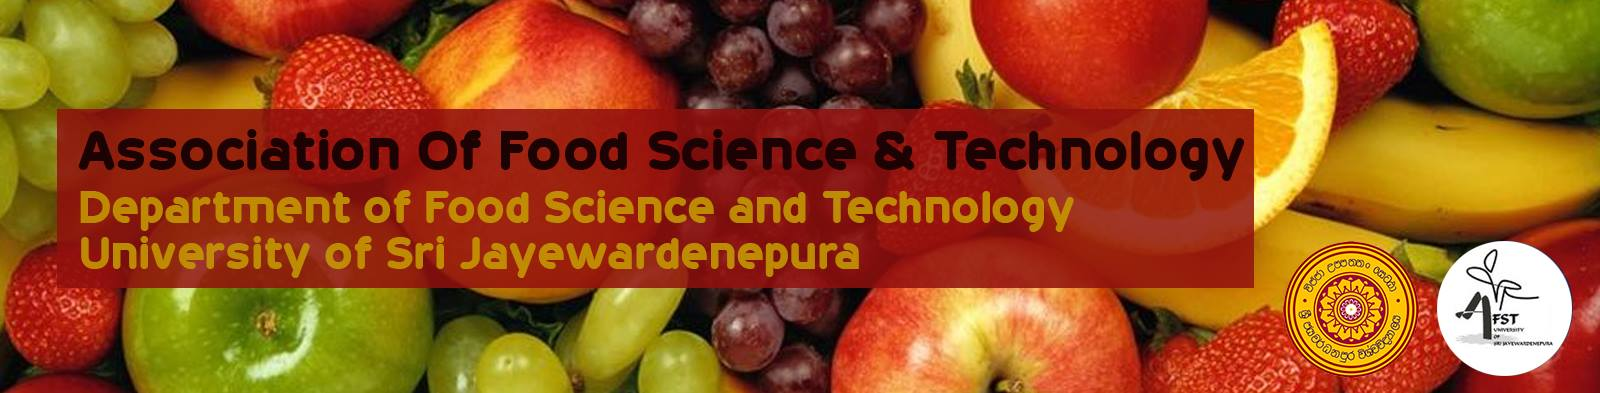 Association of Food science & Technology